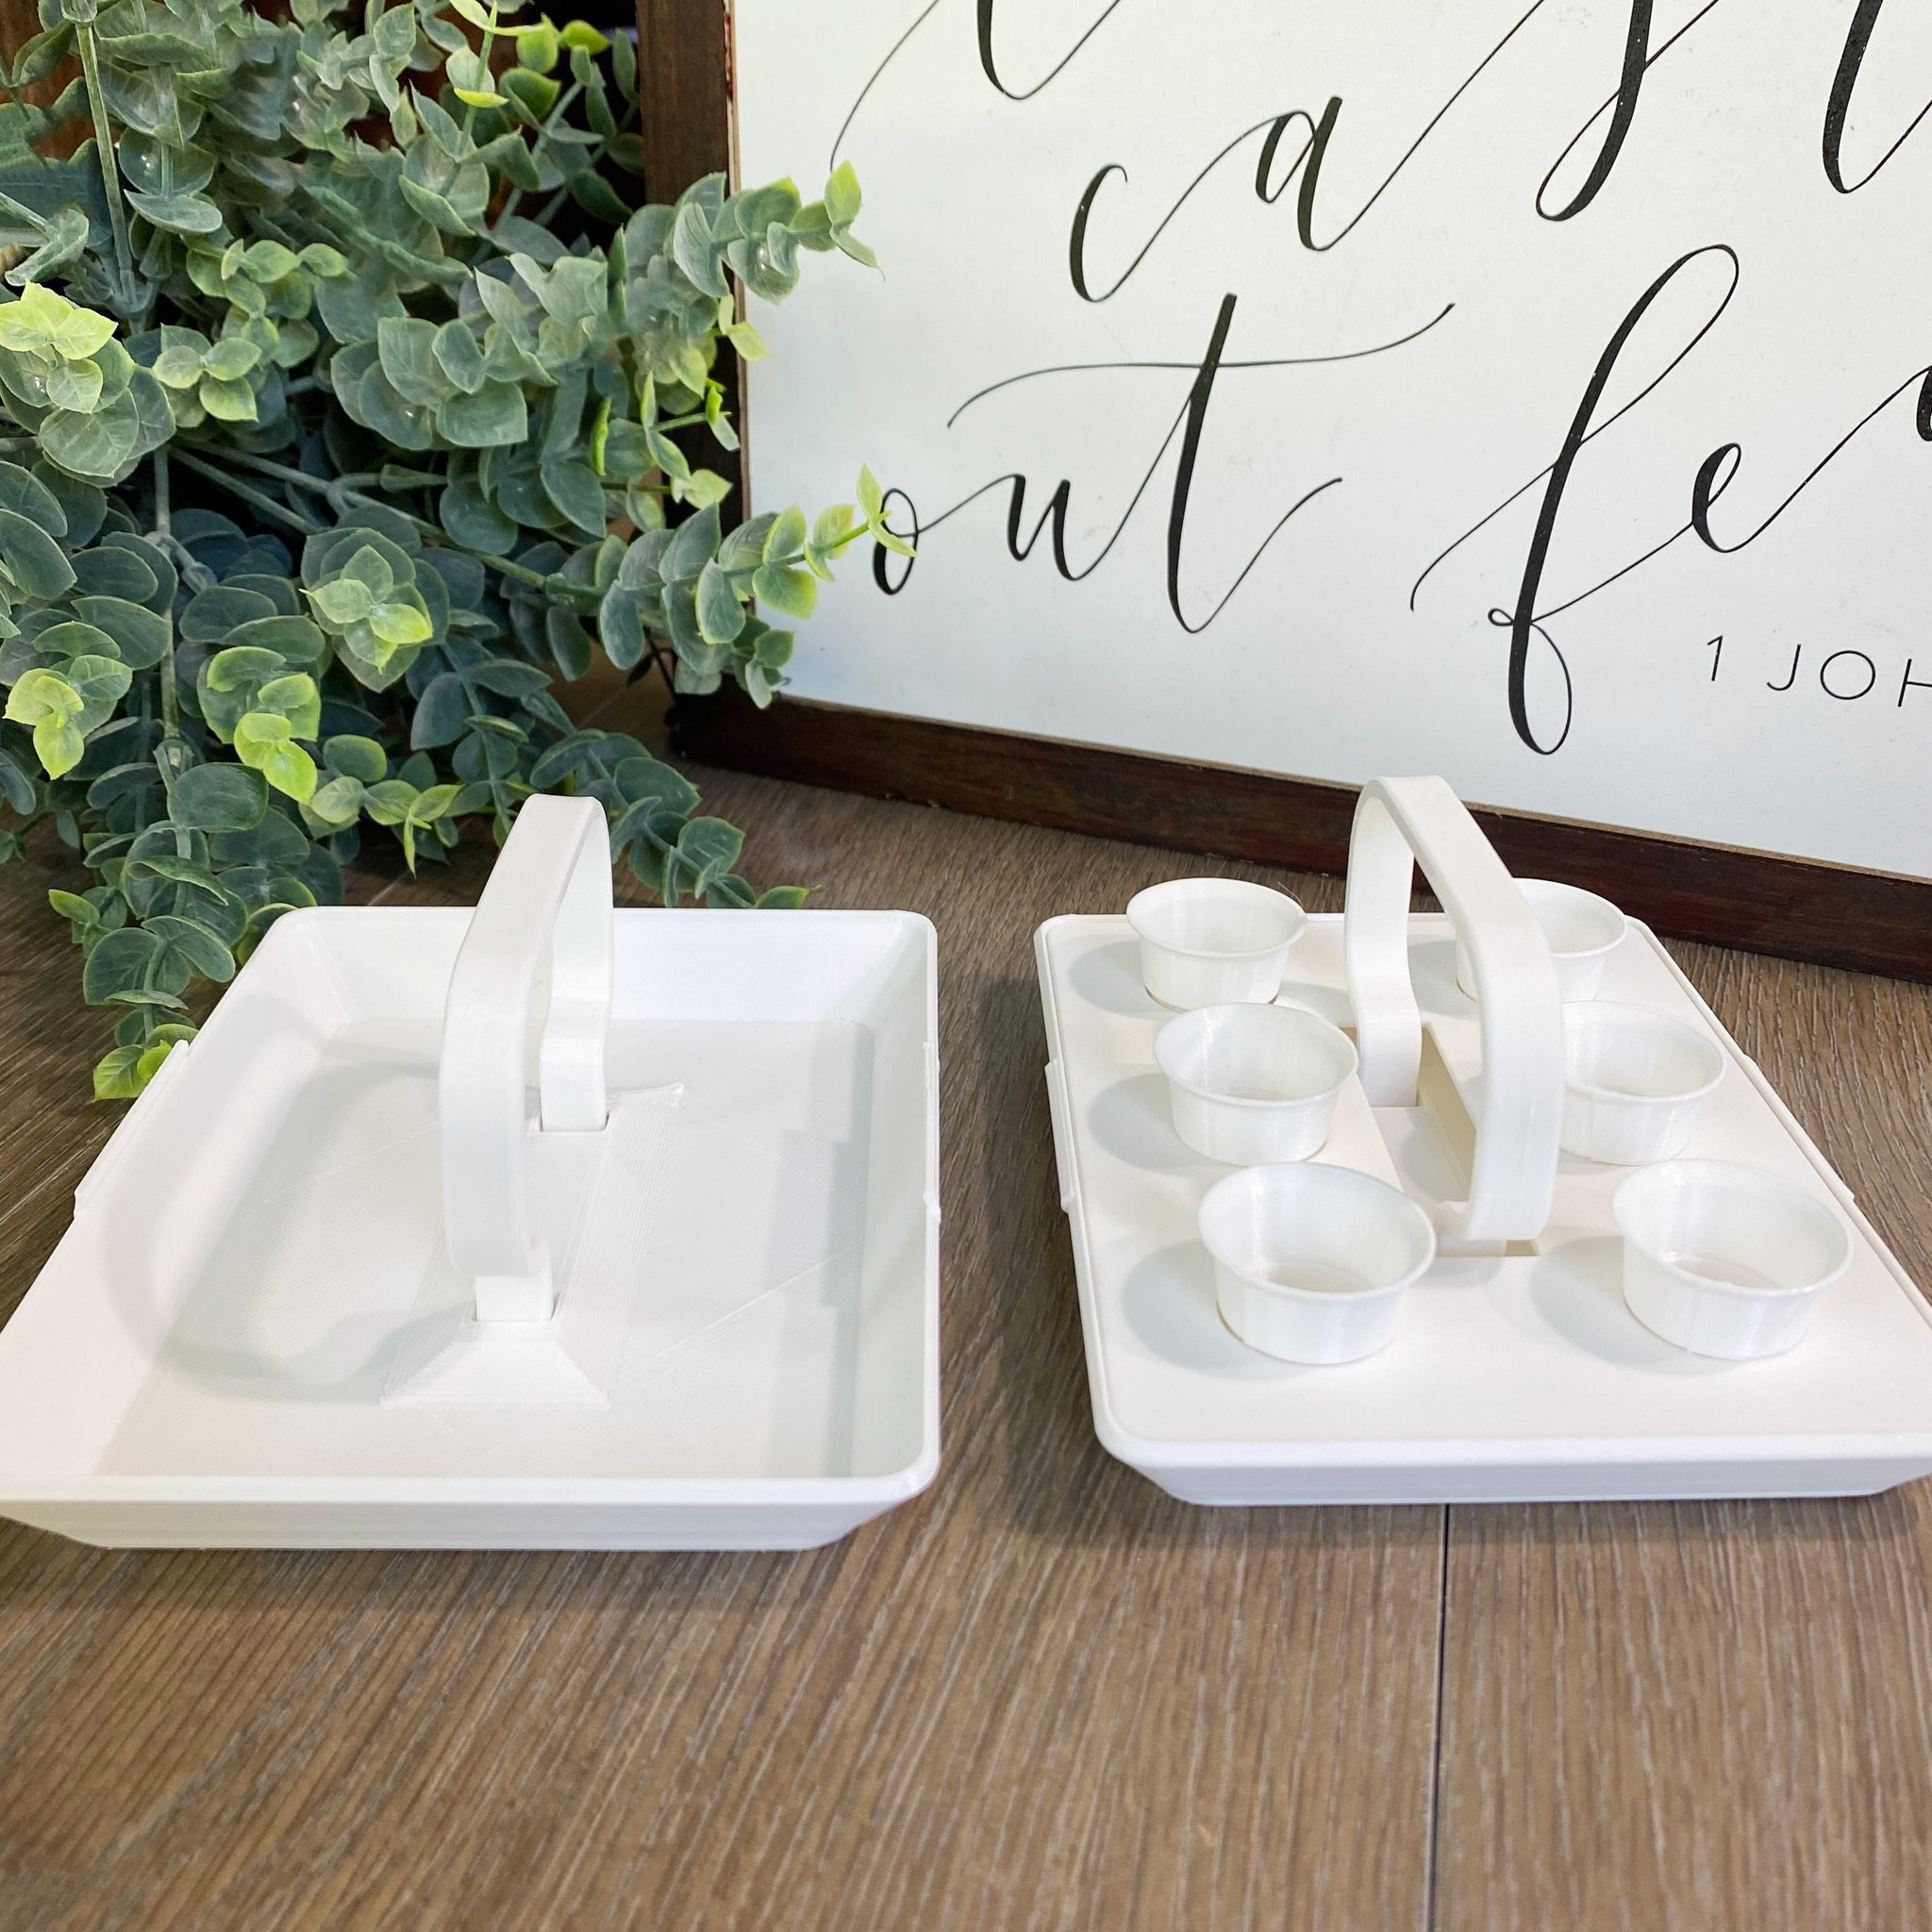 Sacrament Trays - Discounted